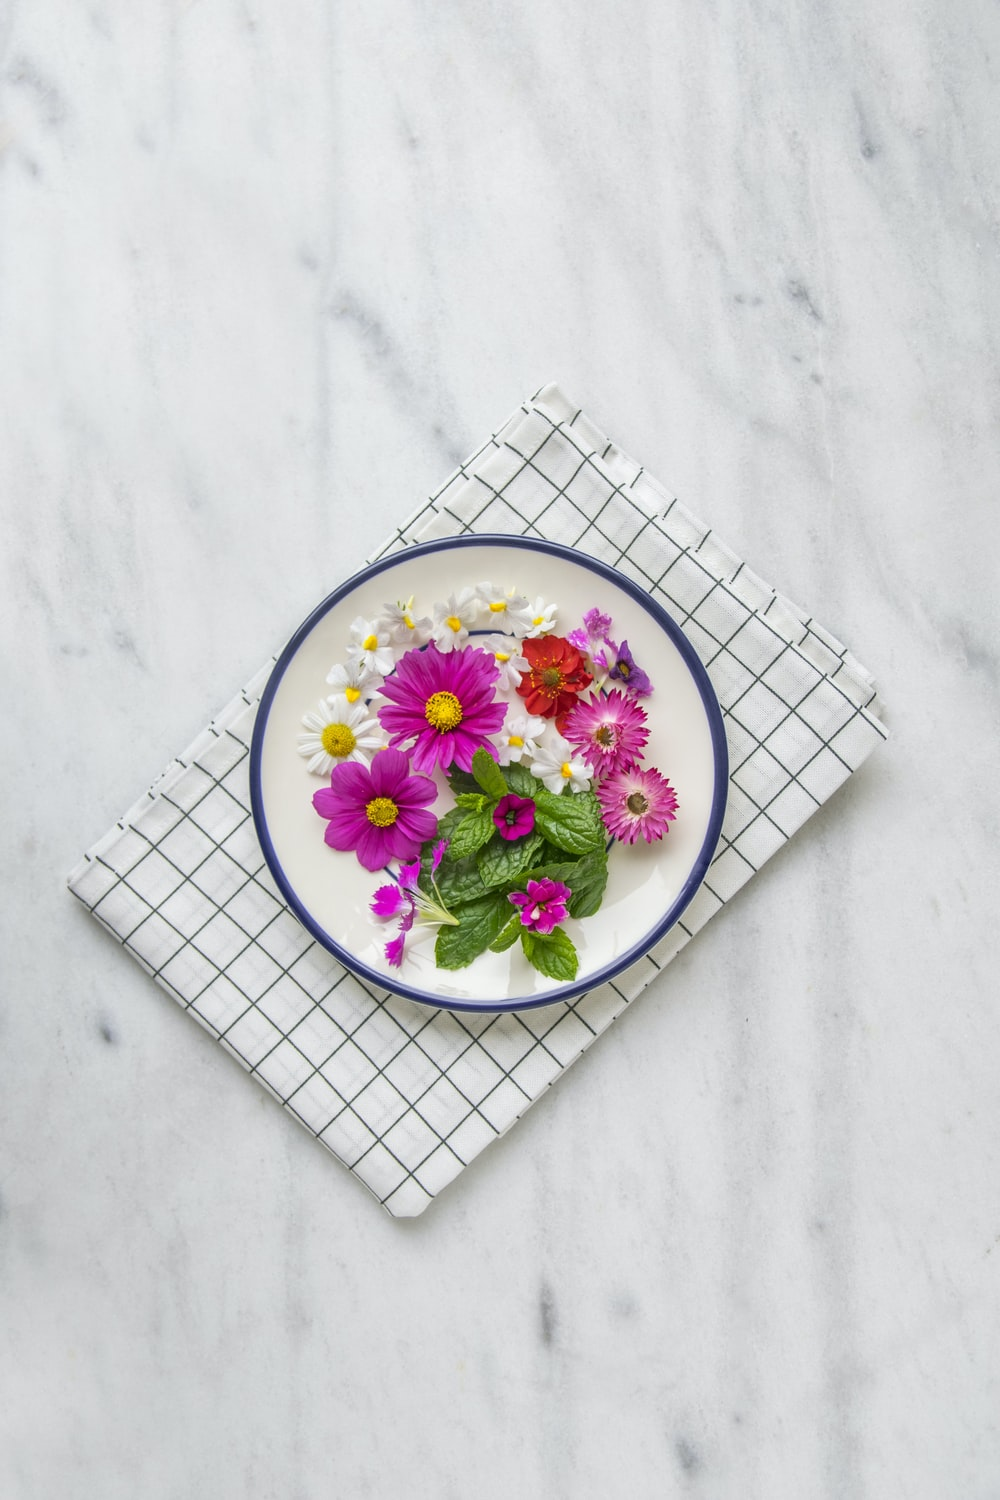 pink petaled flower on white plate